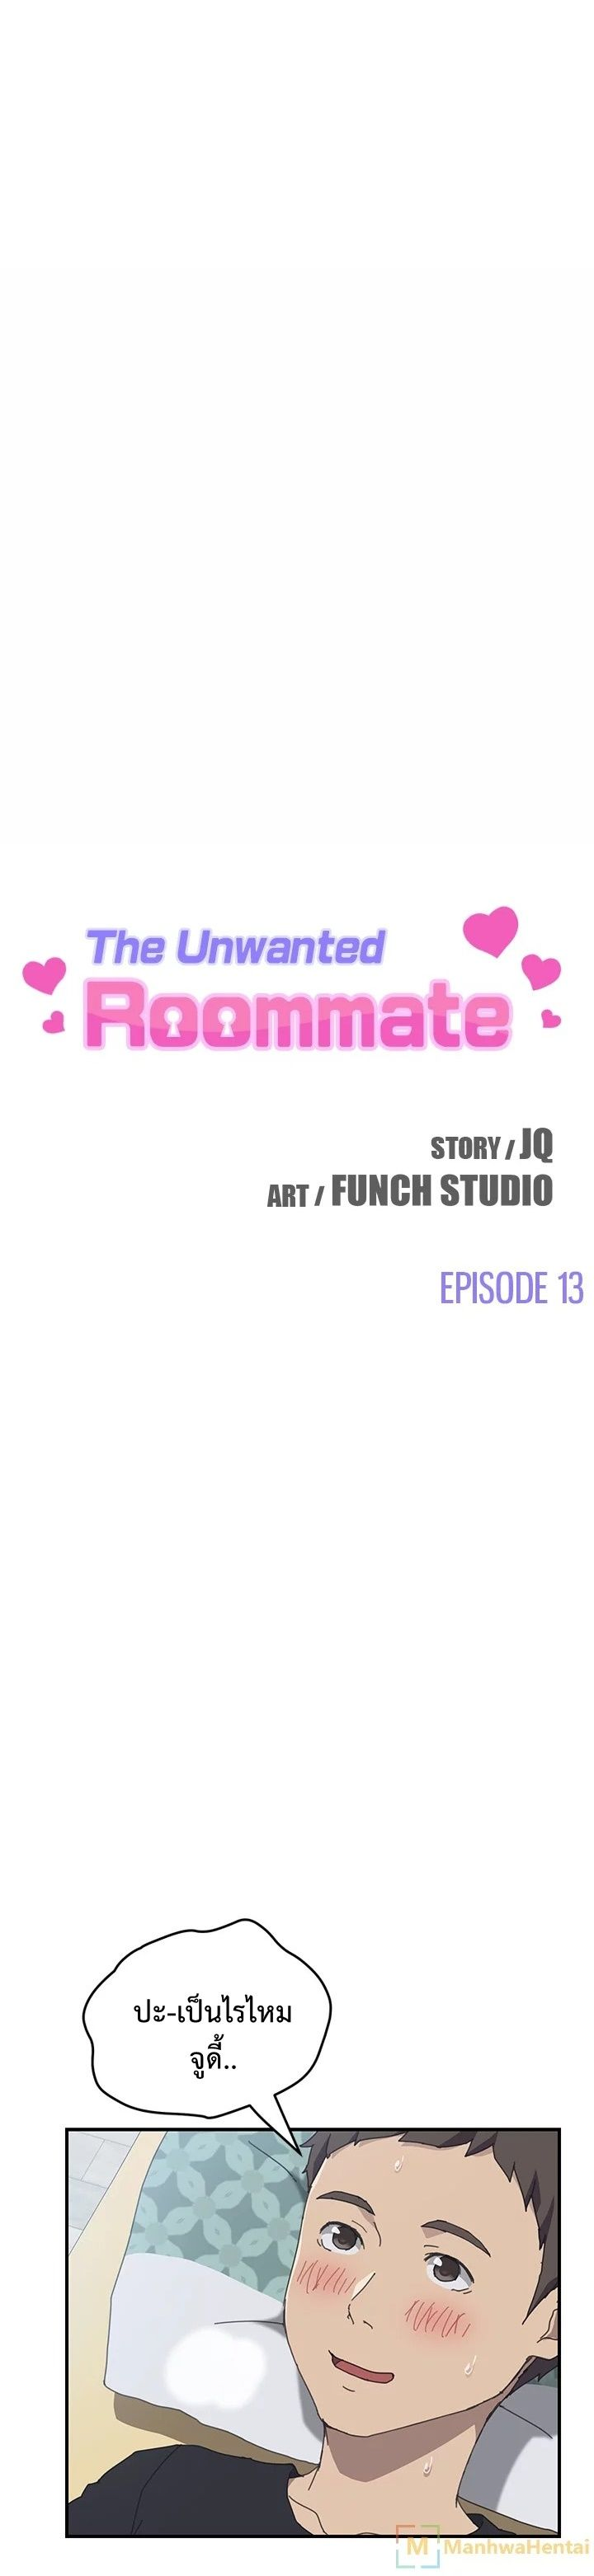 The Unwanted Roommate-ตอนที่ 13